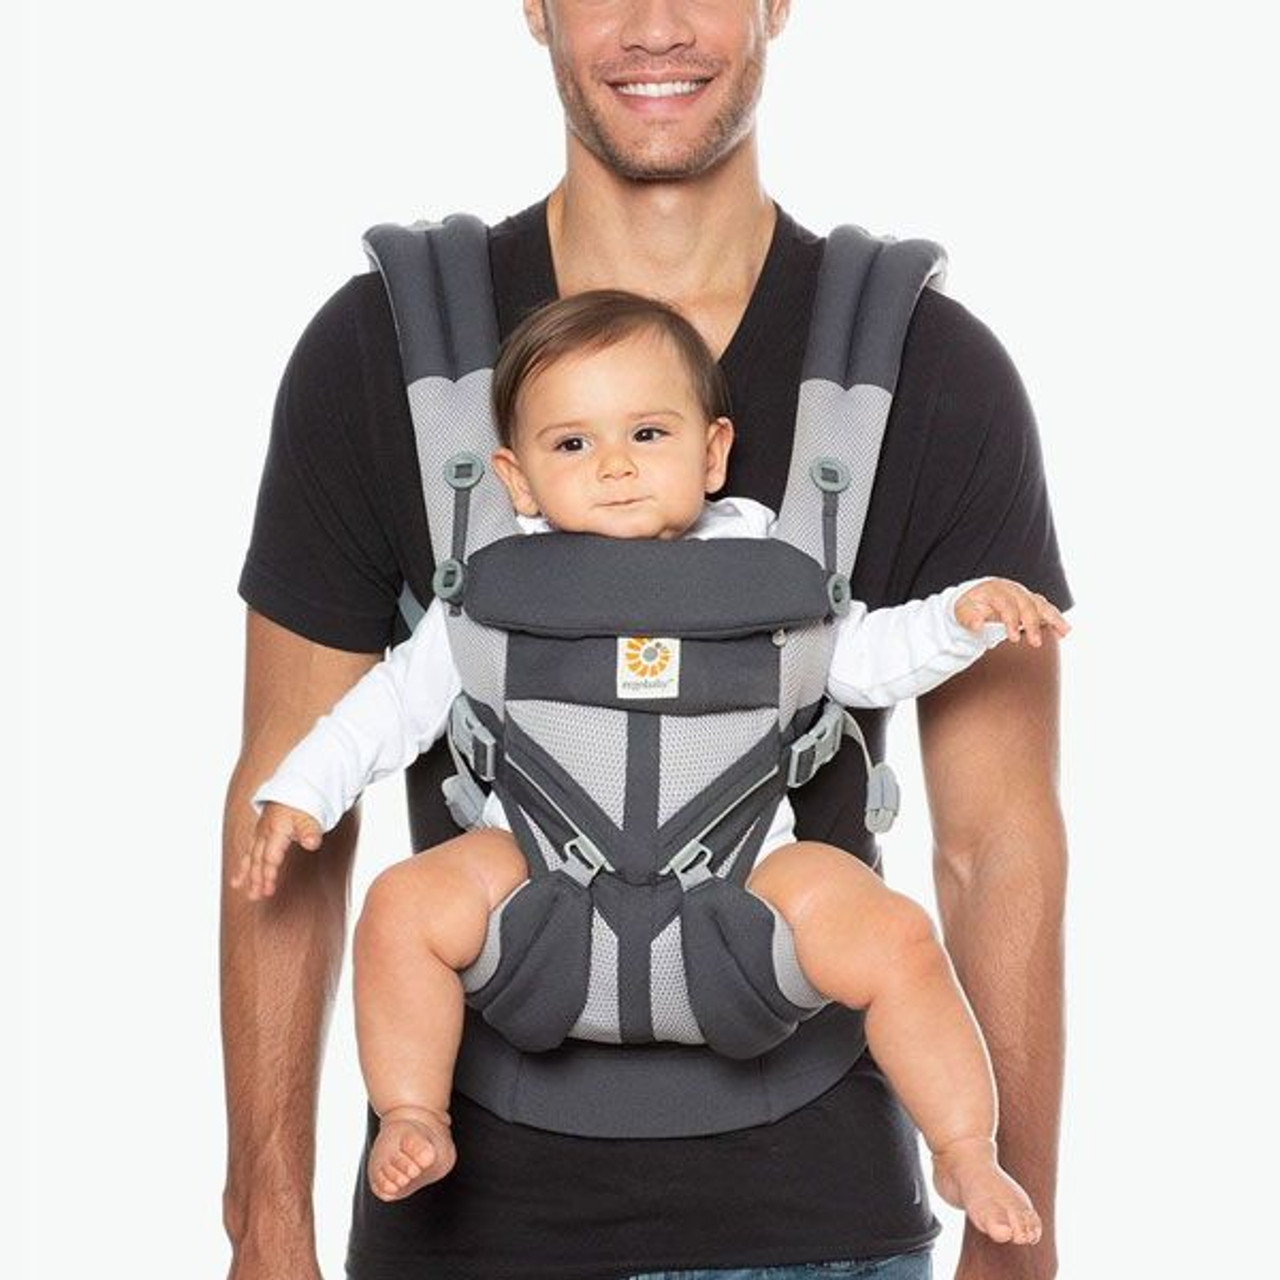 Ergobaby OMNI 360 Baby Carrier All in One Cool Air Mesh CARBON GREY at Baby Barn Discounts